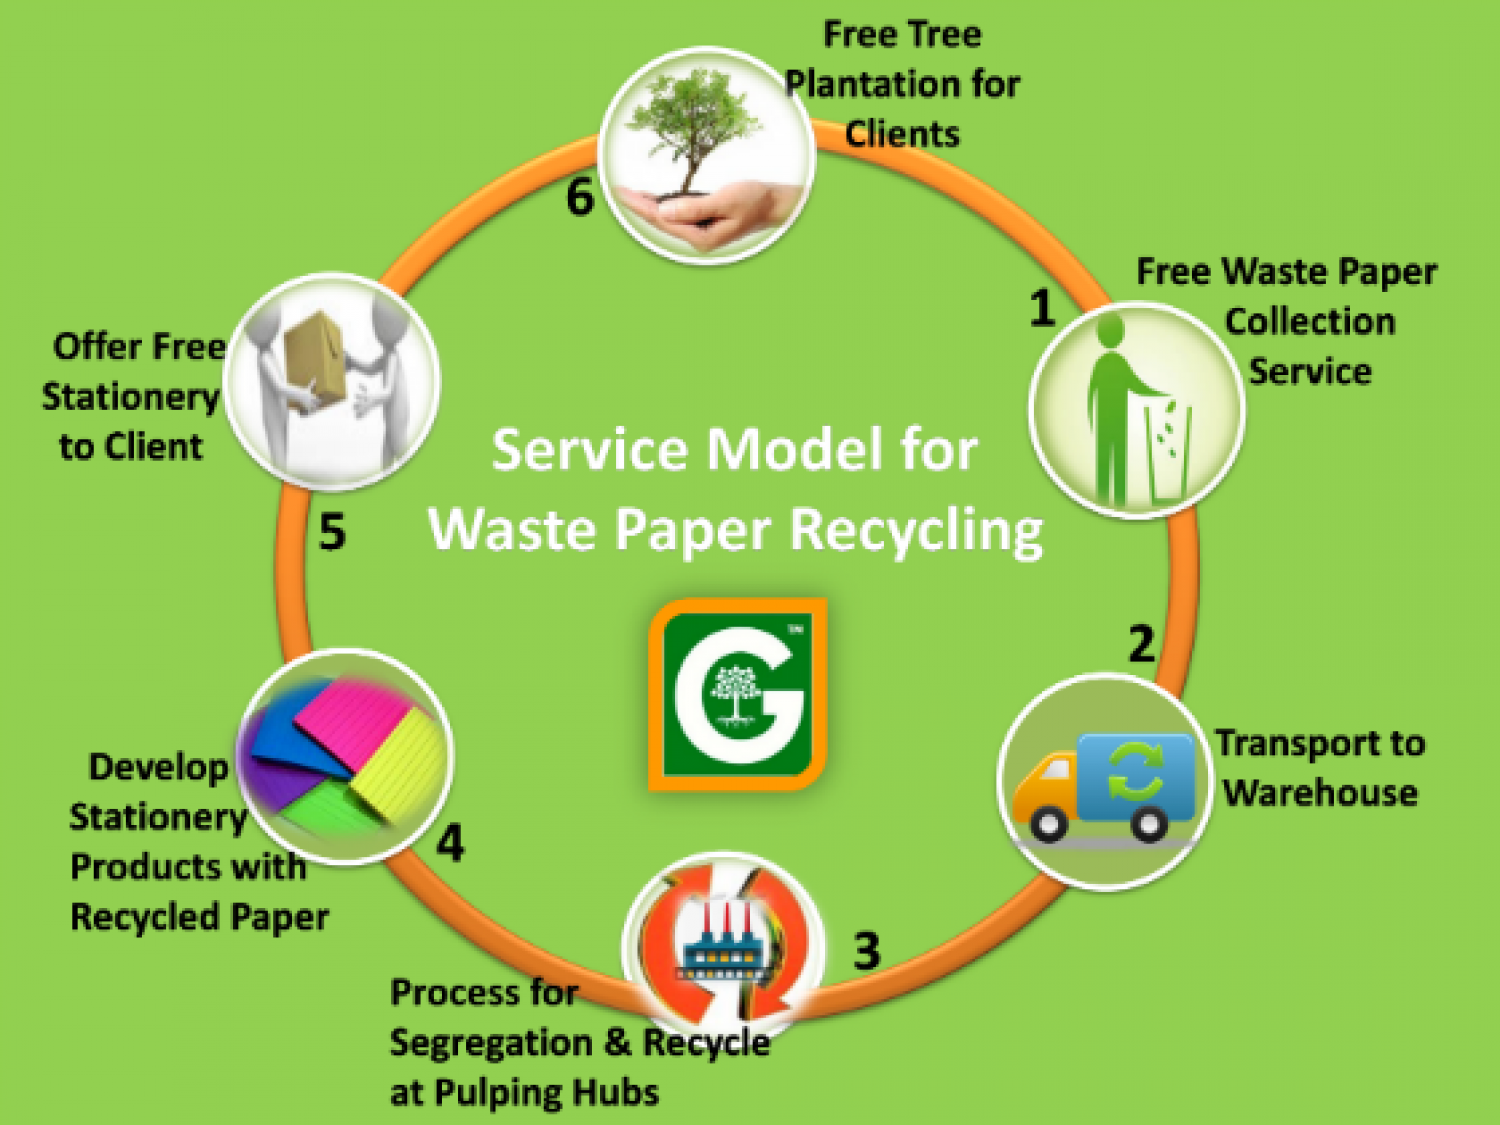 recycling paper essay Recycling aluminum can reap great benefits as well, reducing monetary as well as environmental costs to make cans from recovered aluminum, for example, requires 10% of the energy needed to make them from virgin ore.